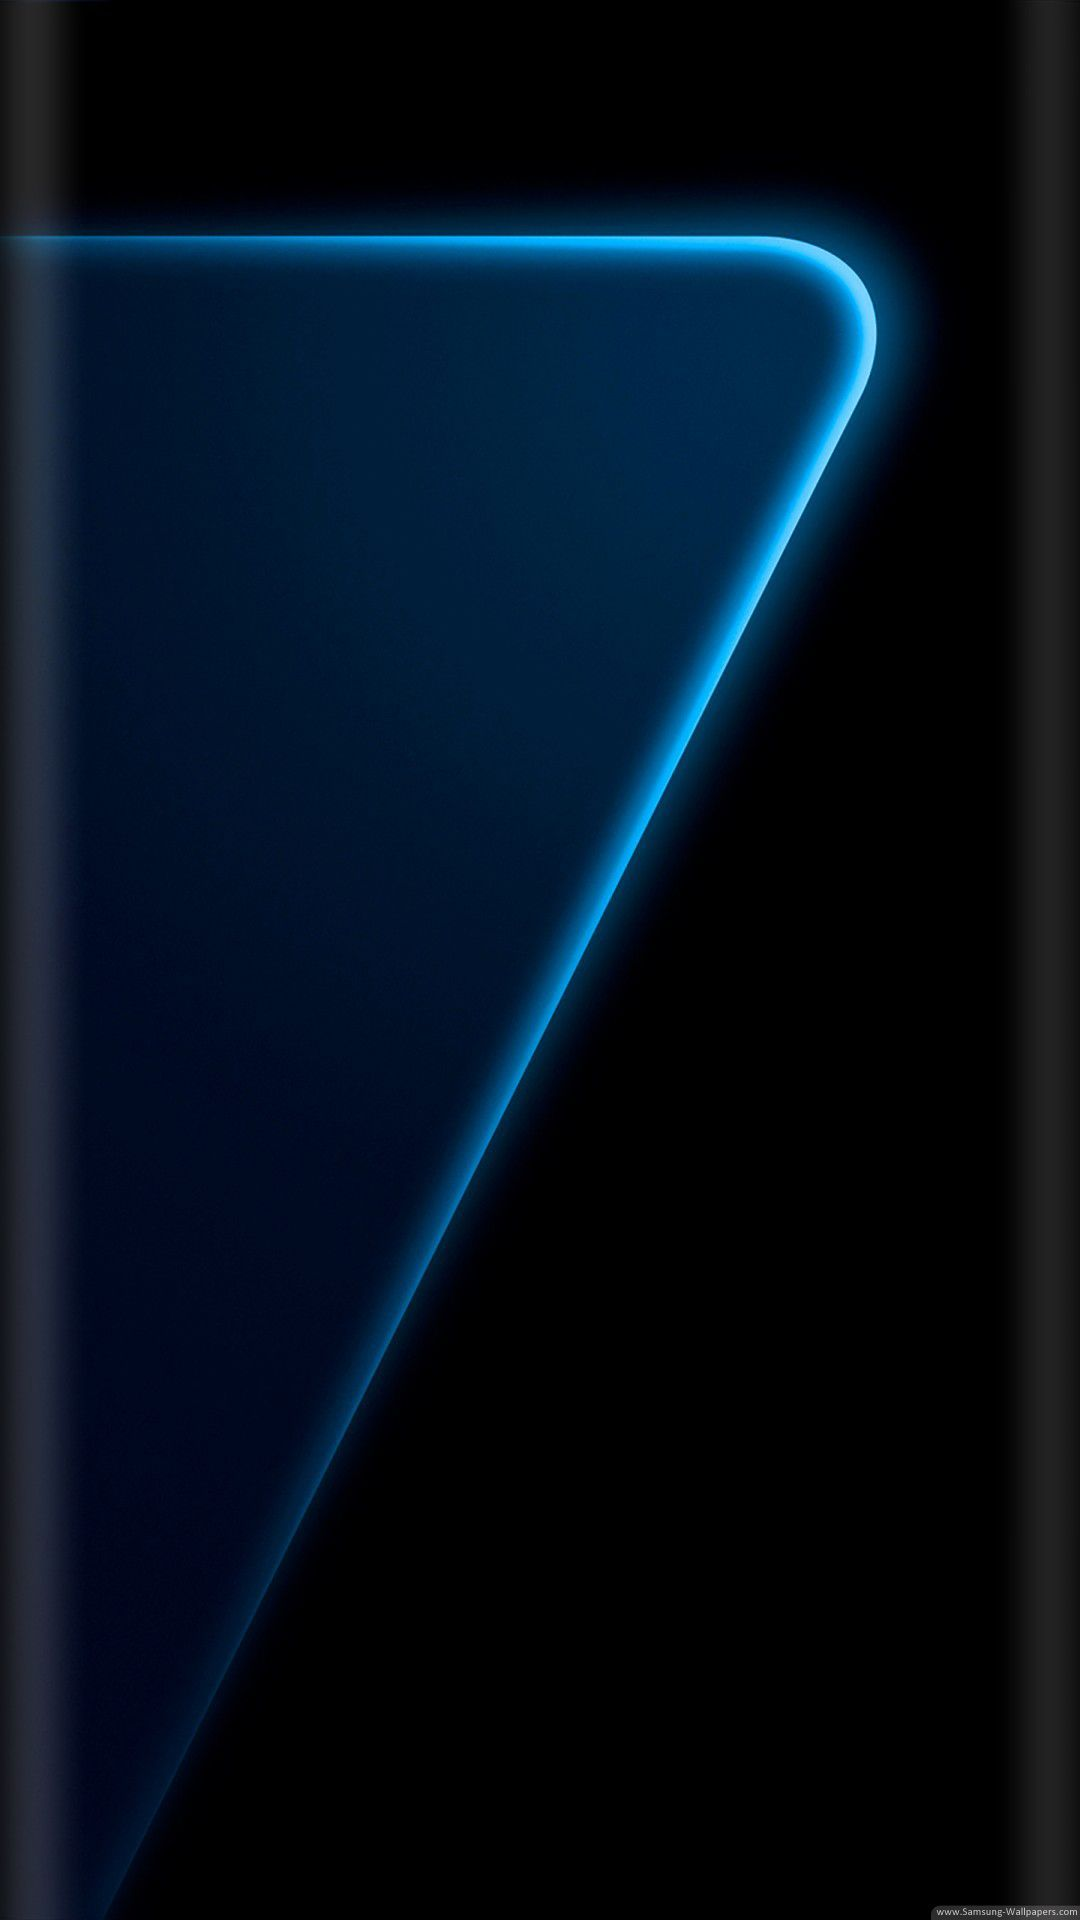 Samsung Hd Walpapers Wallpaperzen Org